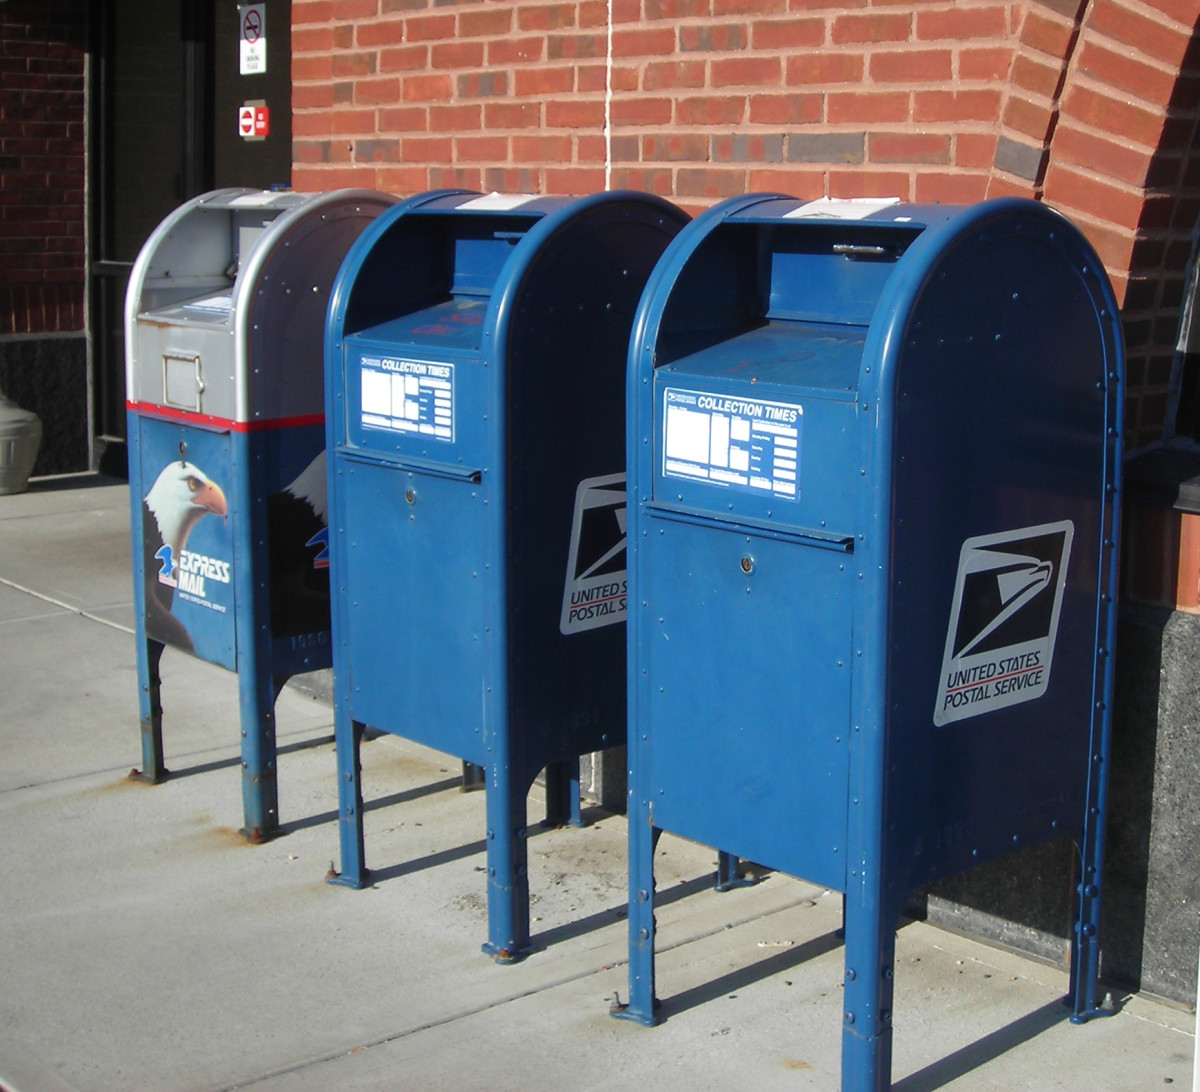 If your flat-rate package is small enough, you can drop it into any USPS drop box instead of taking it to the post office.